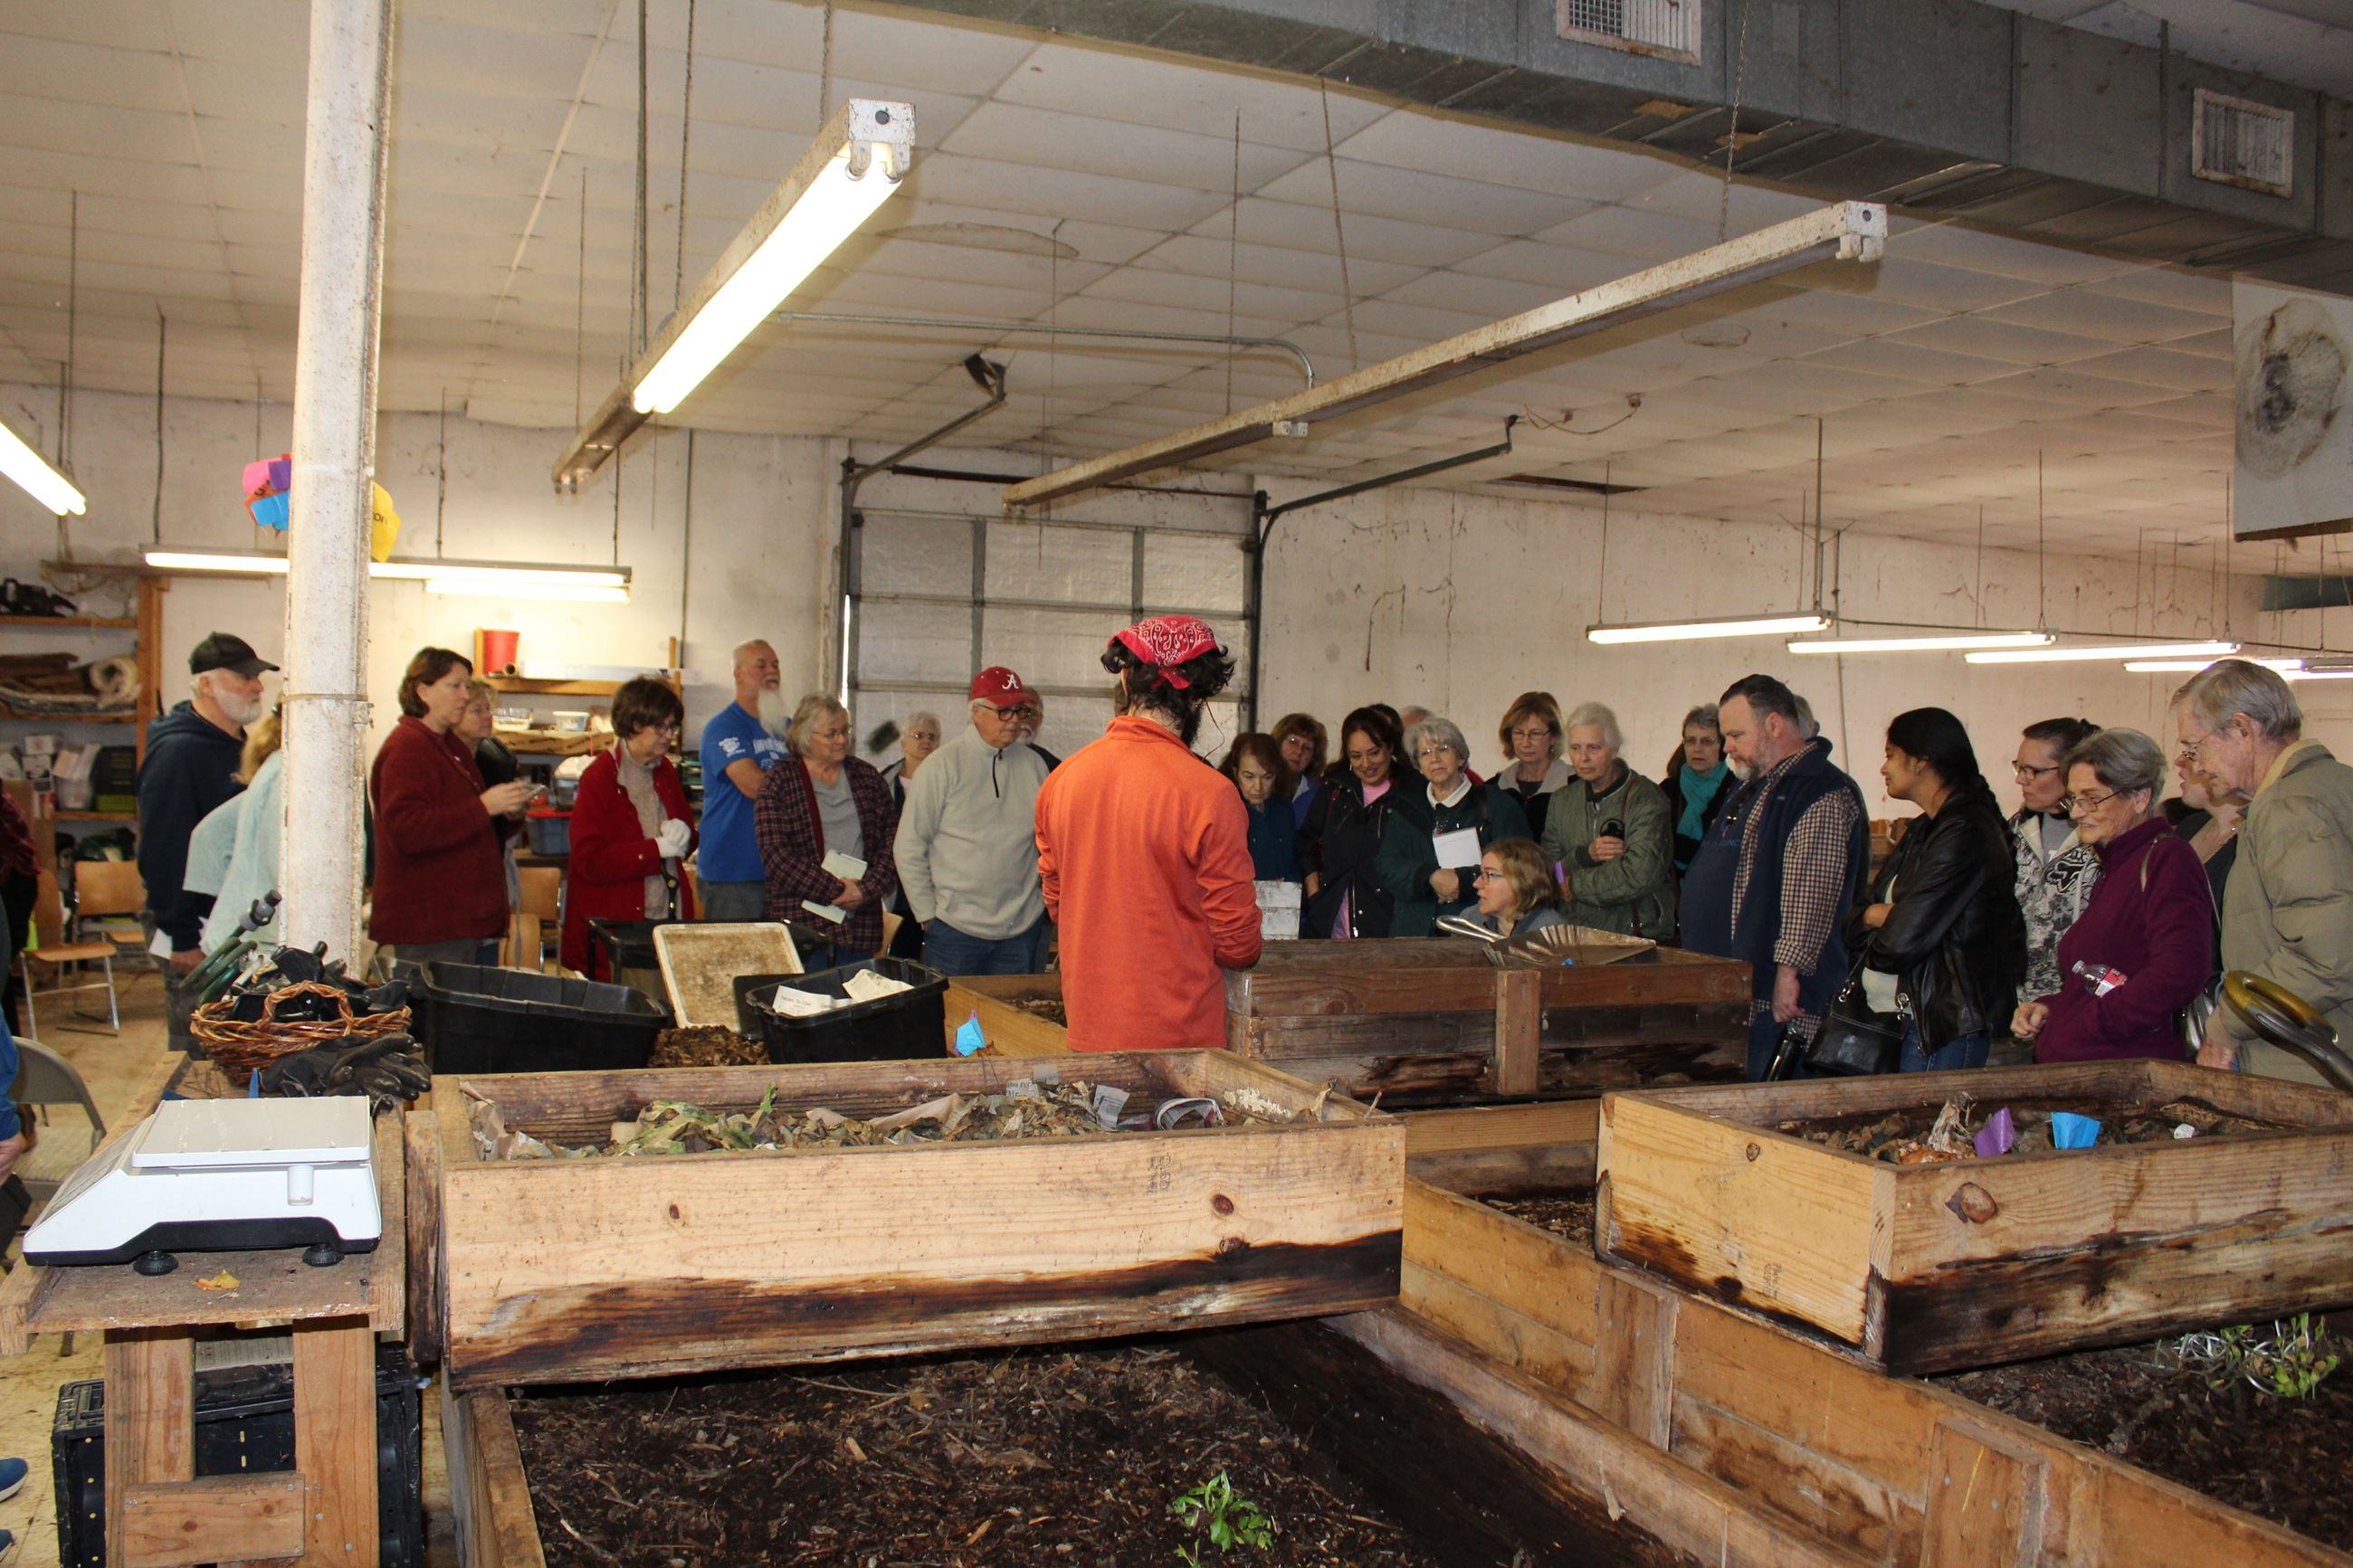 How to worm compost class held at Tx Worm Ranch